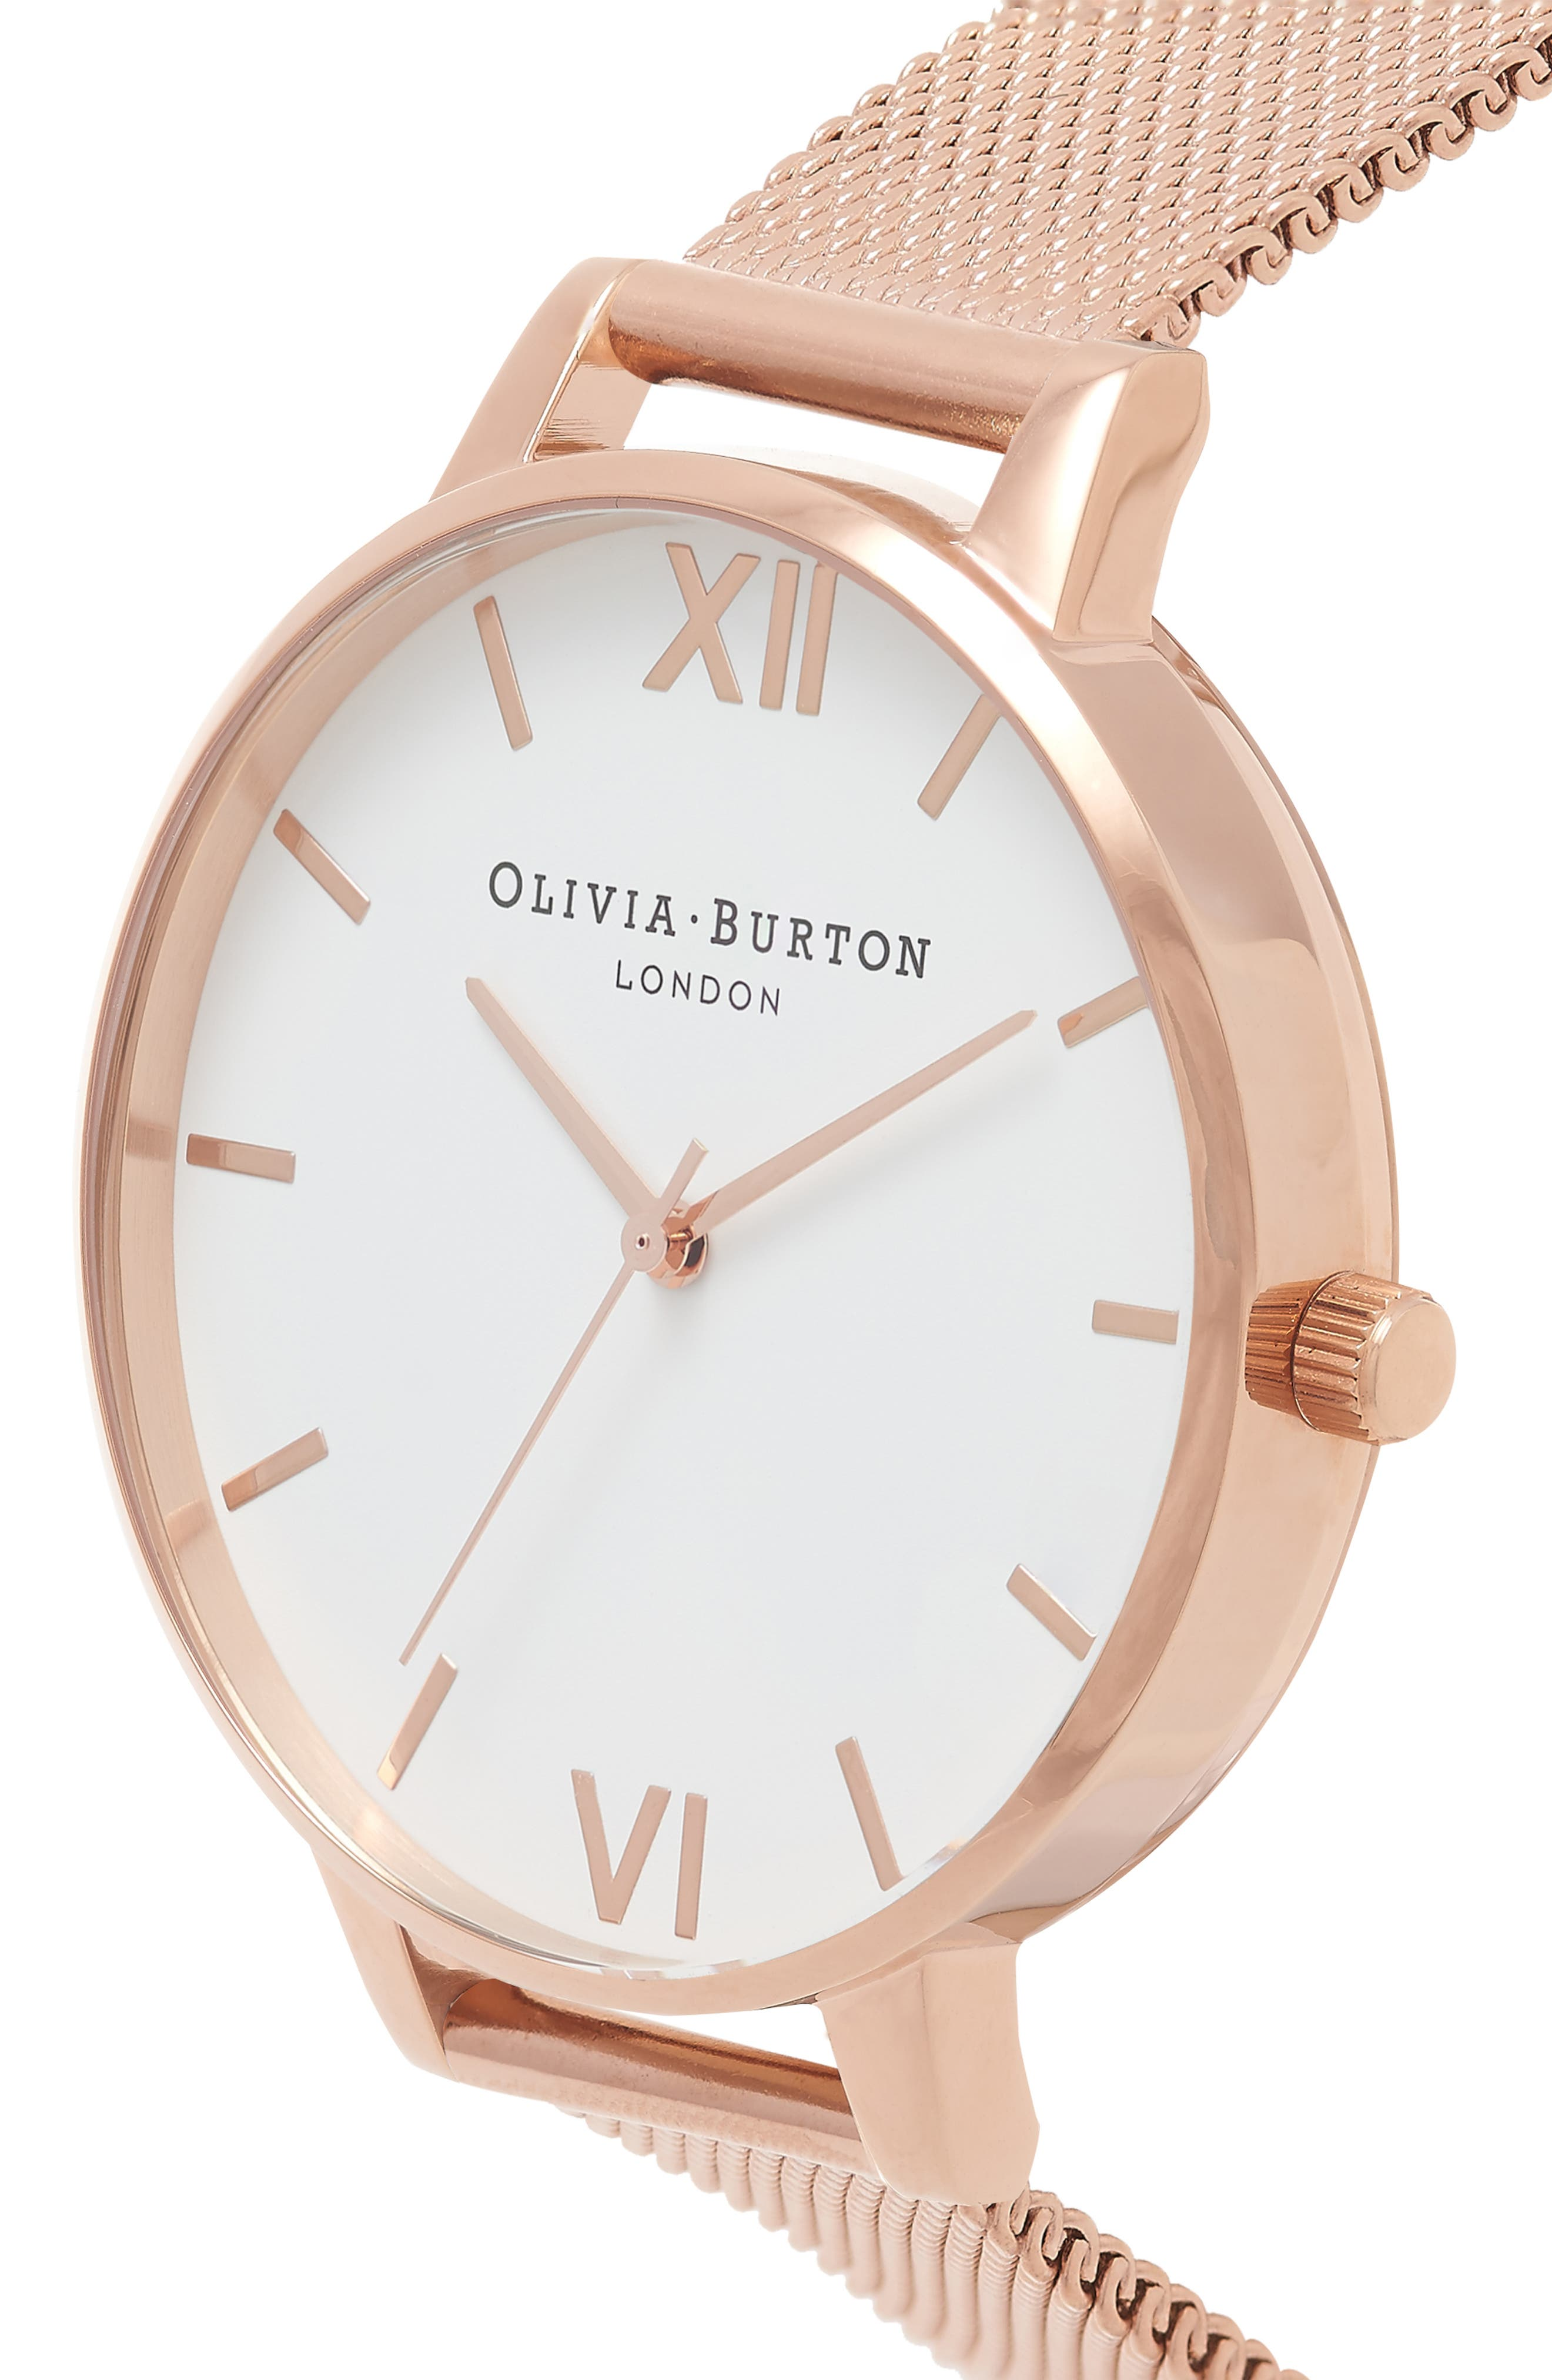 OLIVIA BURTON, 'Big Dial' Mesh Strap Watch, 38mm, Alternate thumbnail 3, color, ROSE GOLD/ WHITE